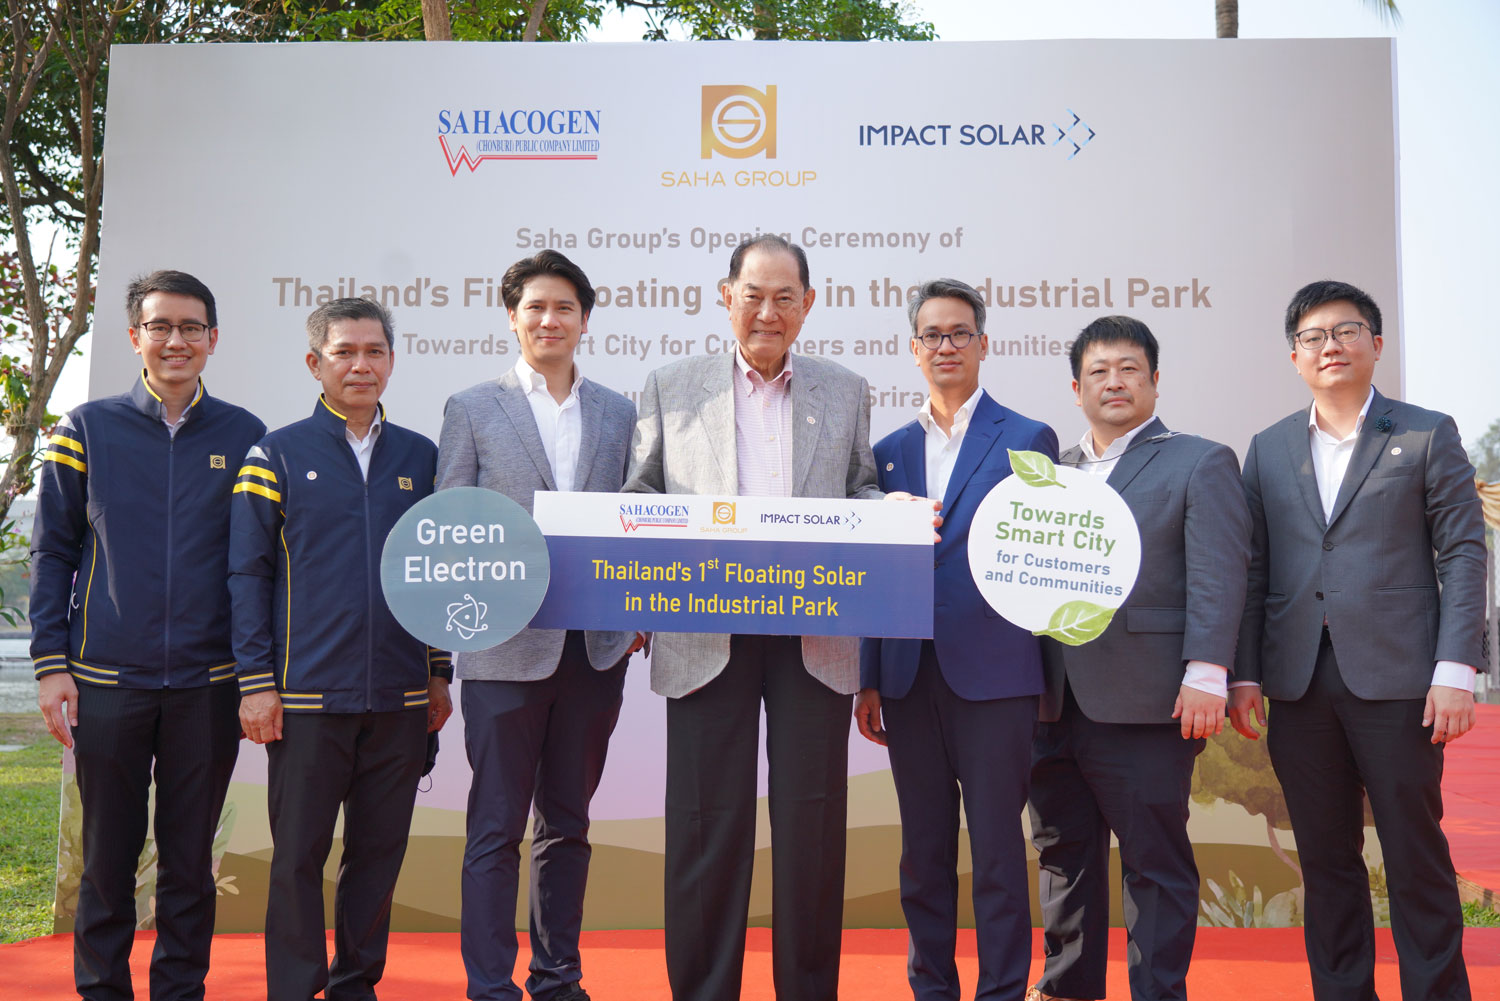 Saha Group's floating solar system to reinforce clean energy spurs clean energy revolution